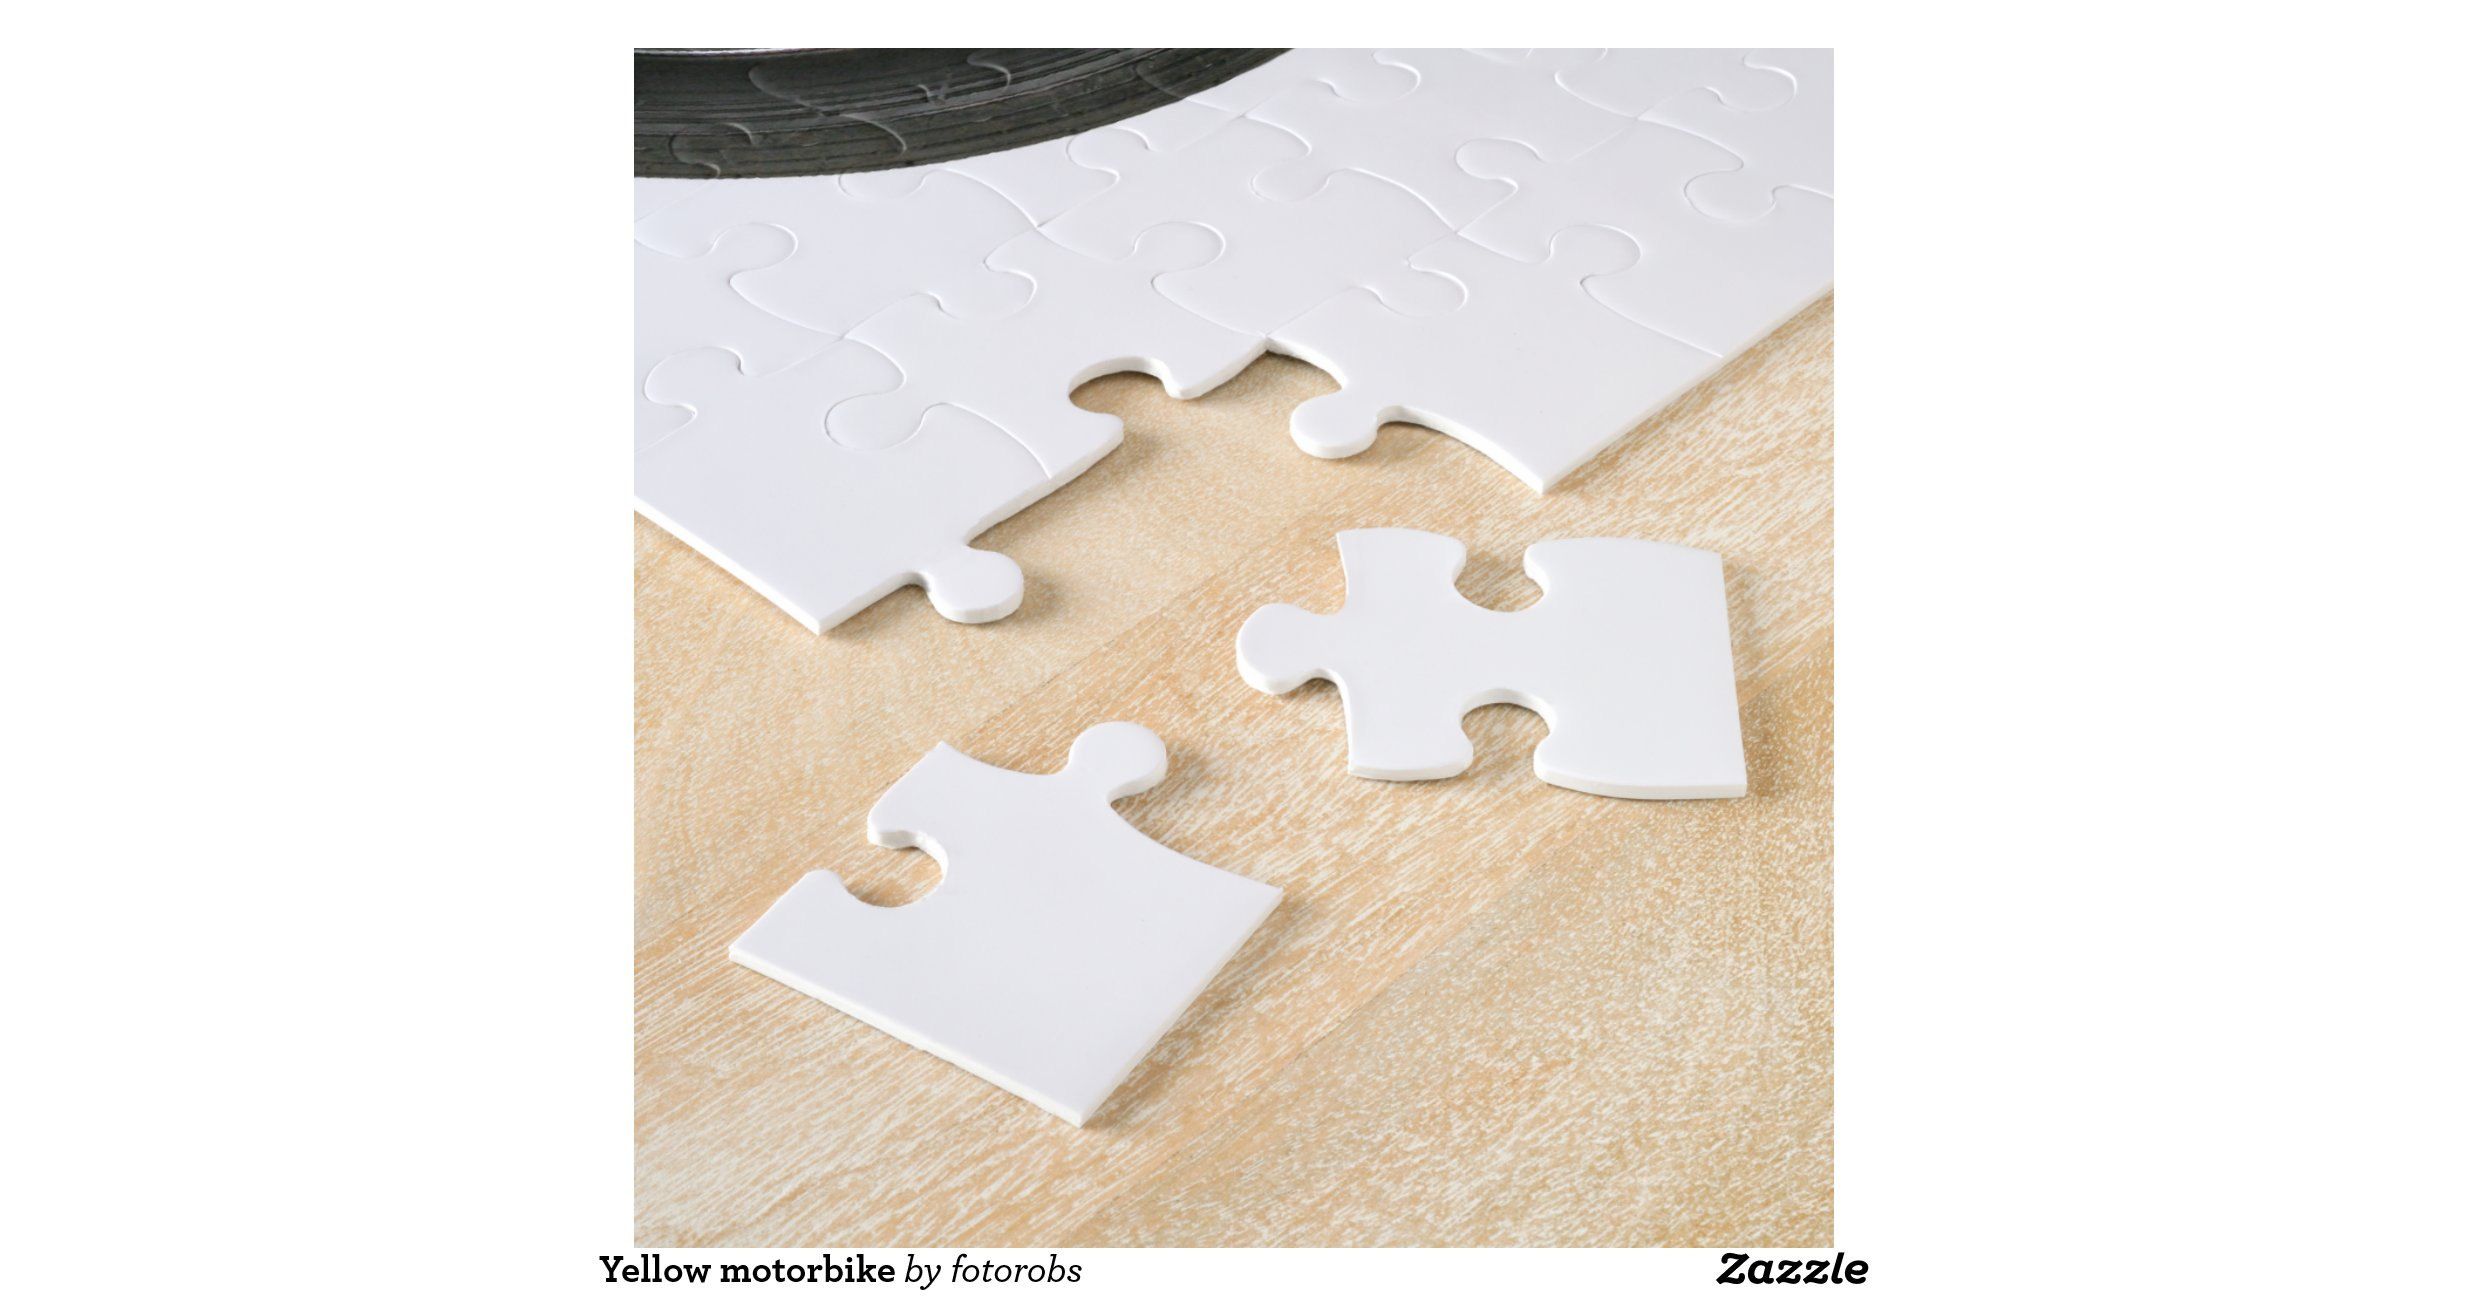 pow 2 1 2 3 4 puzzles Scoring sheet for pow 2: 1-2-3-4 puzzle 1 problem statement (6 pt) max score score a restate the problem of the pow in your own words 4 b restate the specific task in your own words 2.